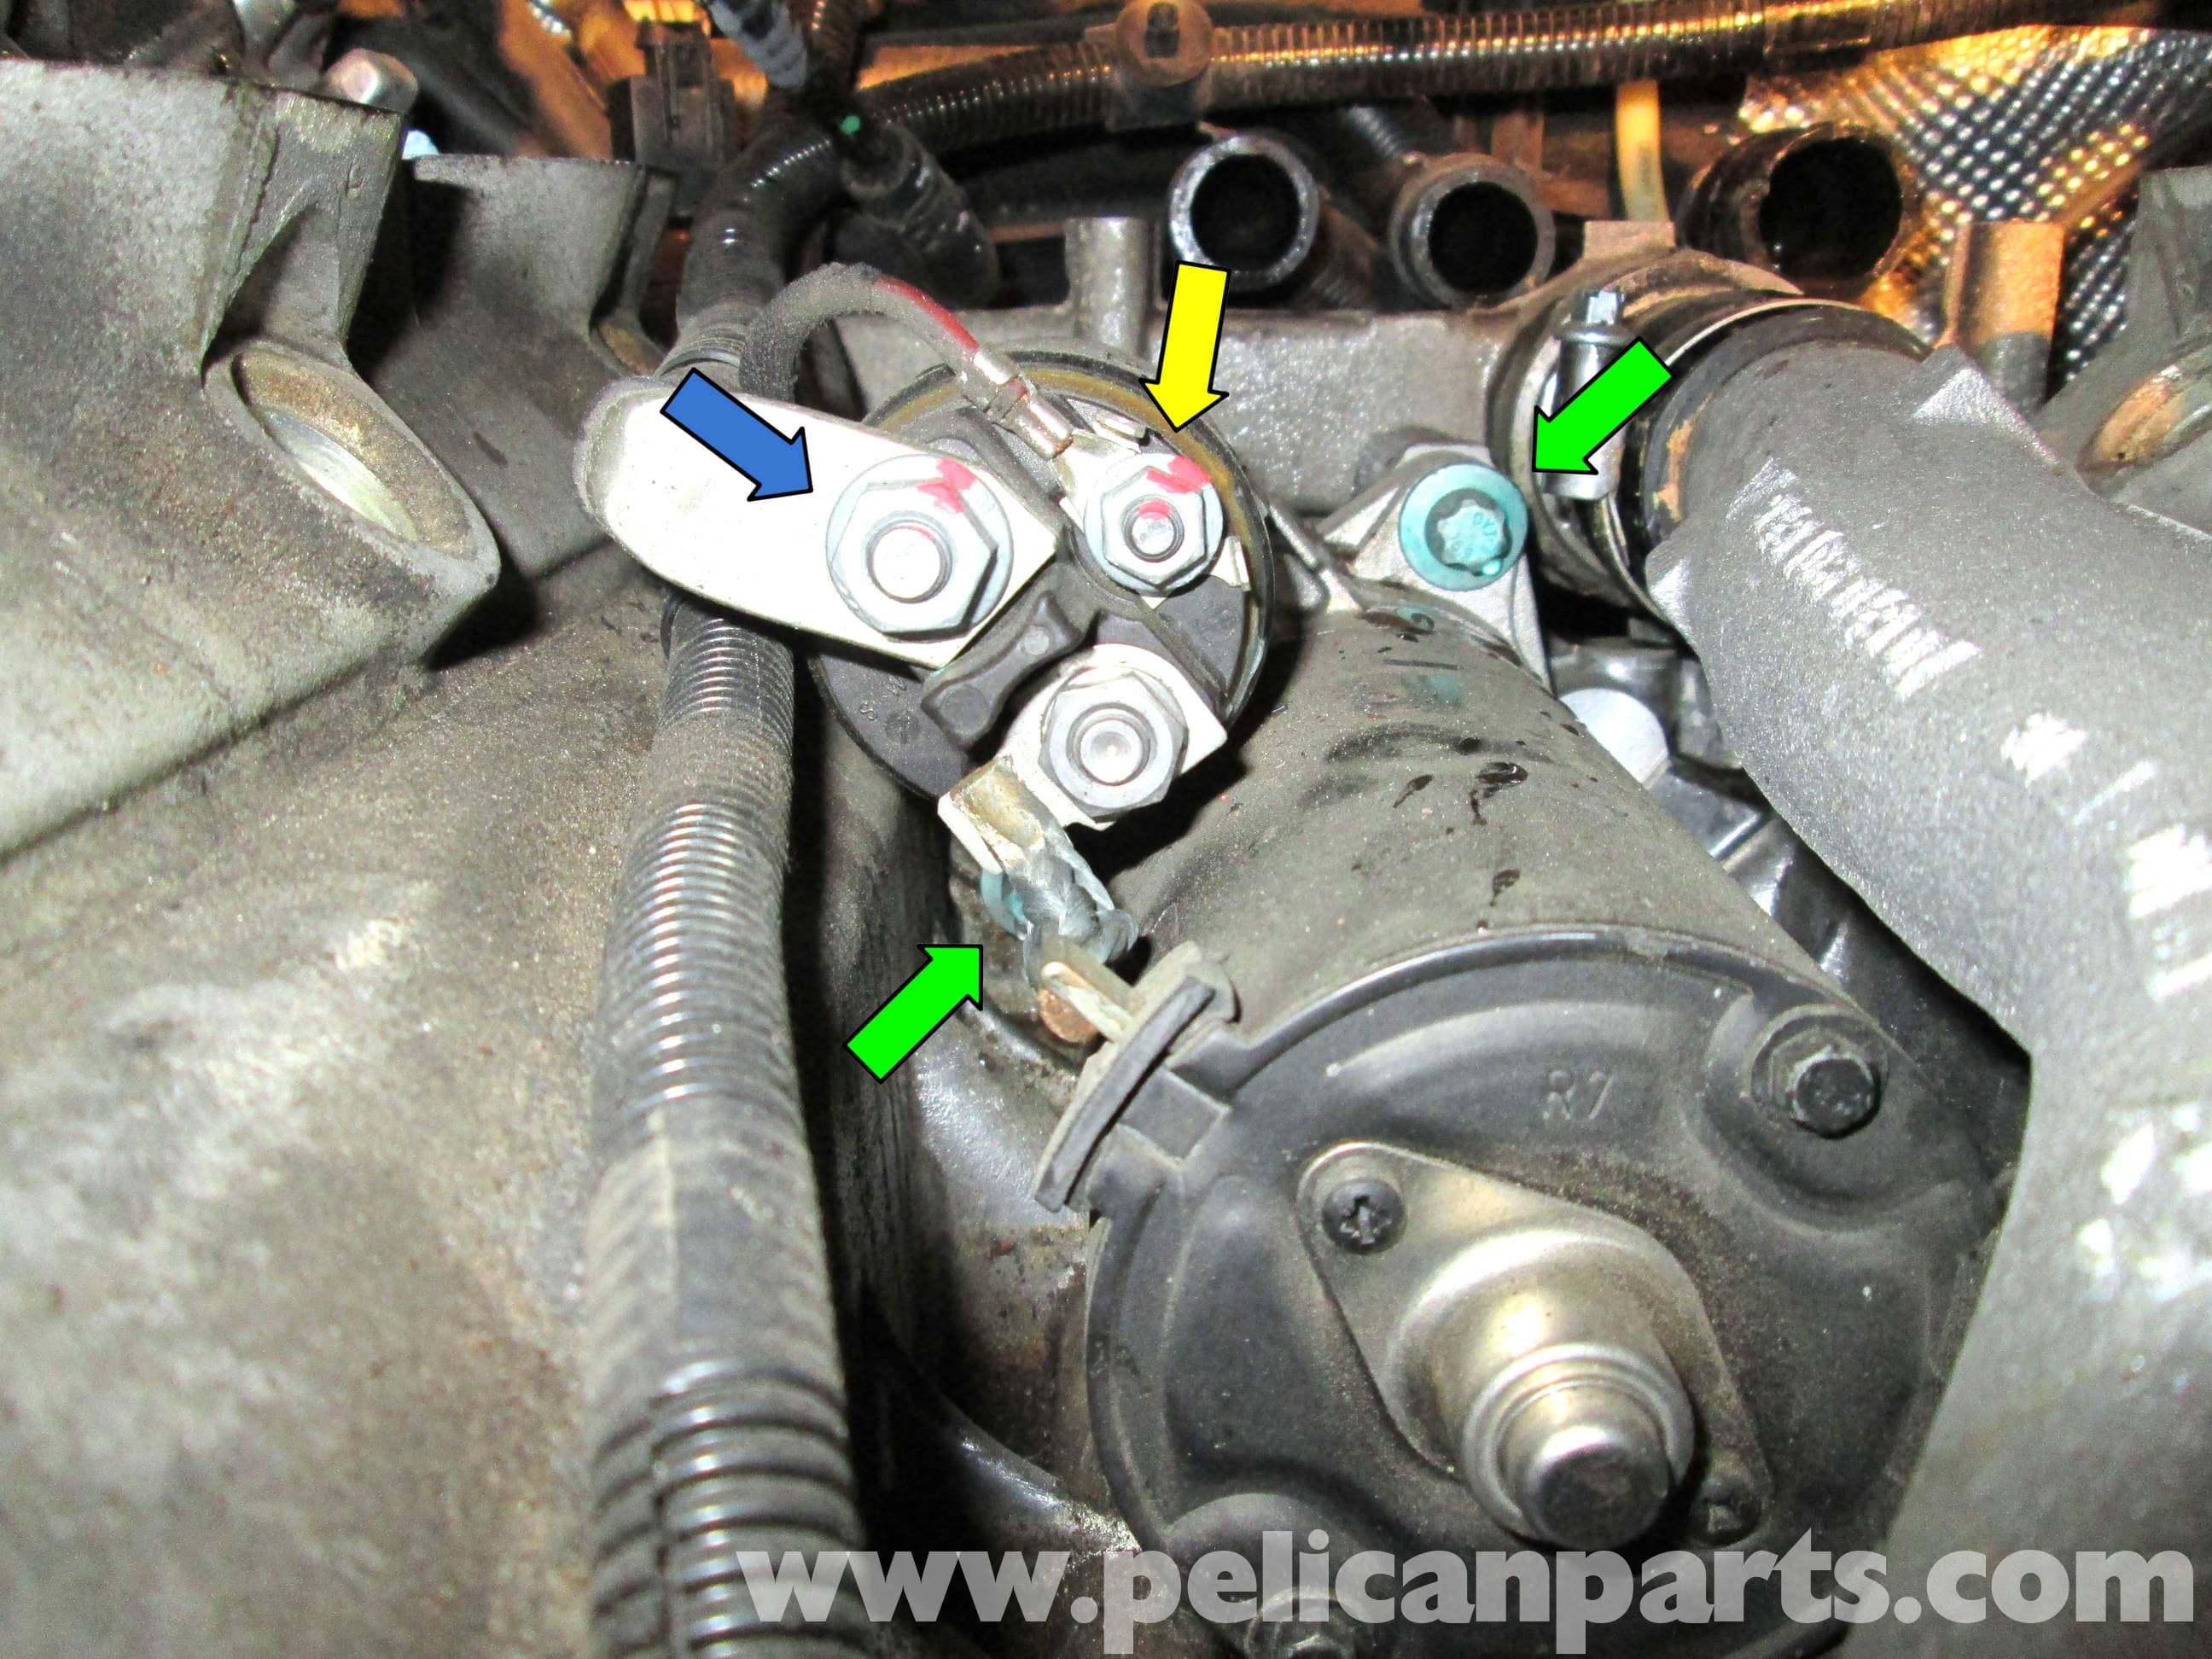 Switch Wiring Diagram On Parts Headlight Diagram 2003 Dodge Durango